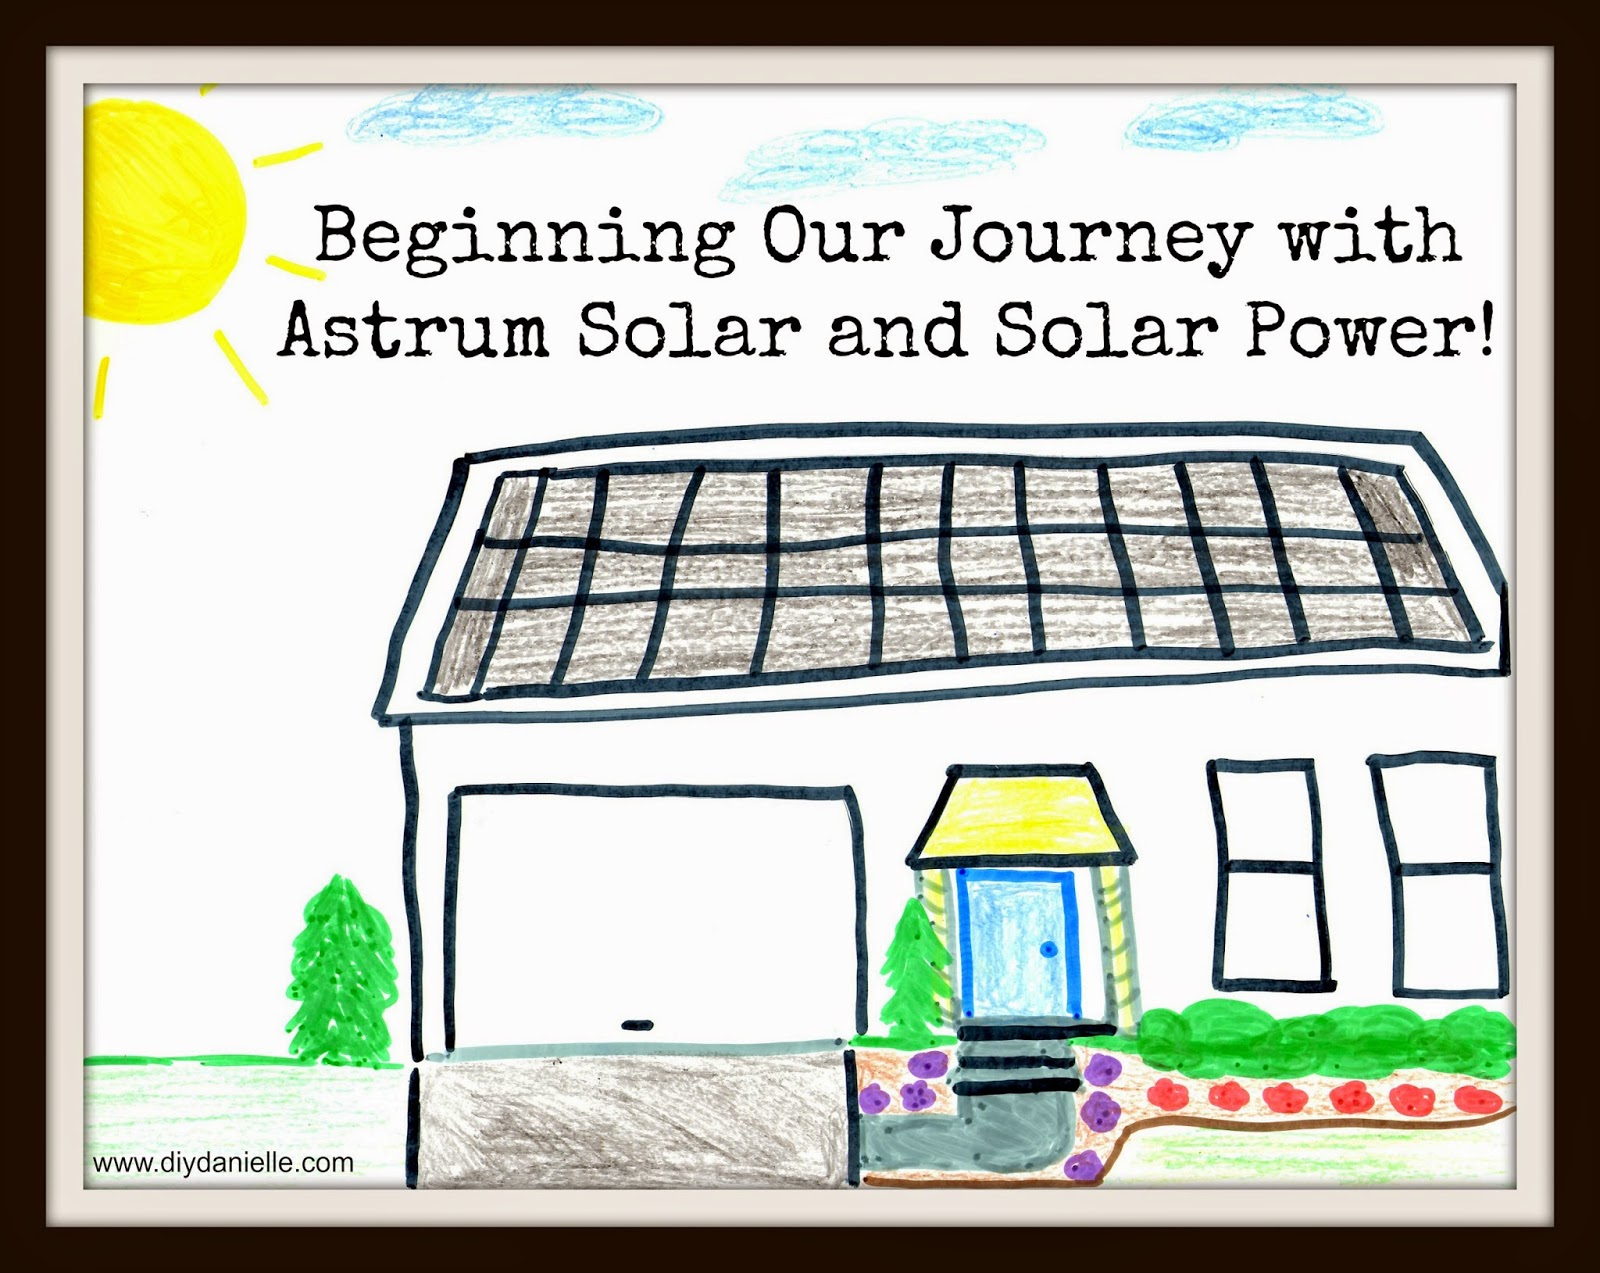 Getting solar panels installed tomorrow! So excited to share our journey and experience with you.